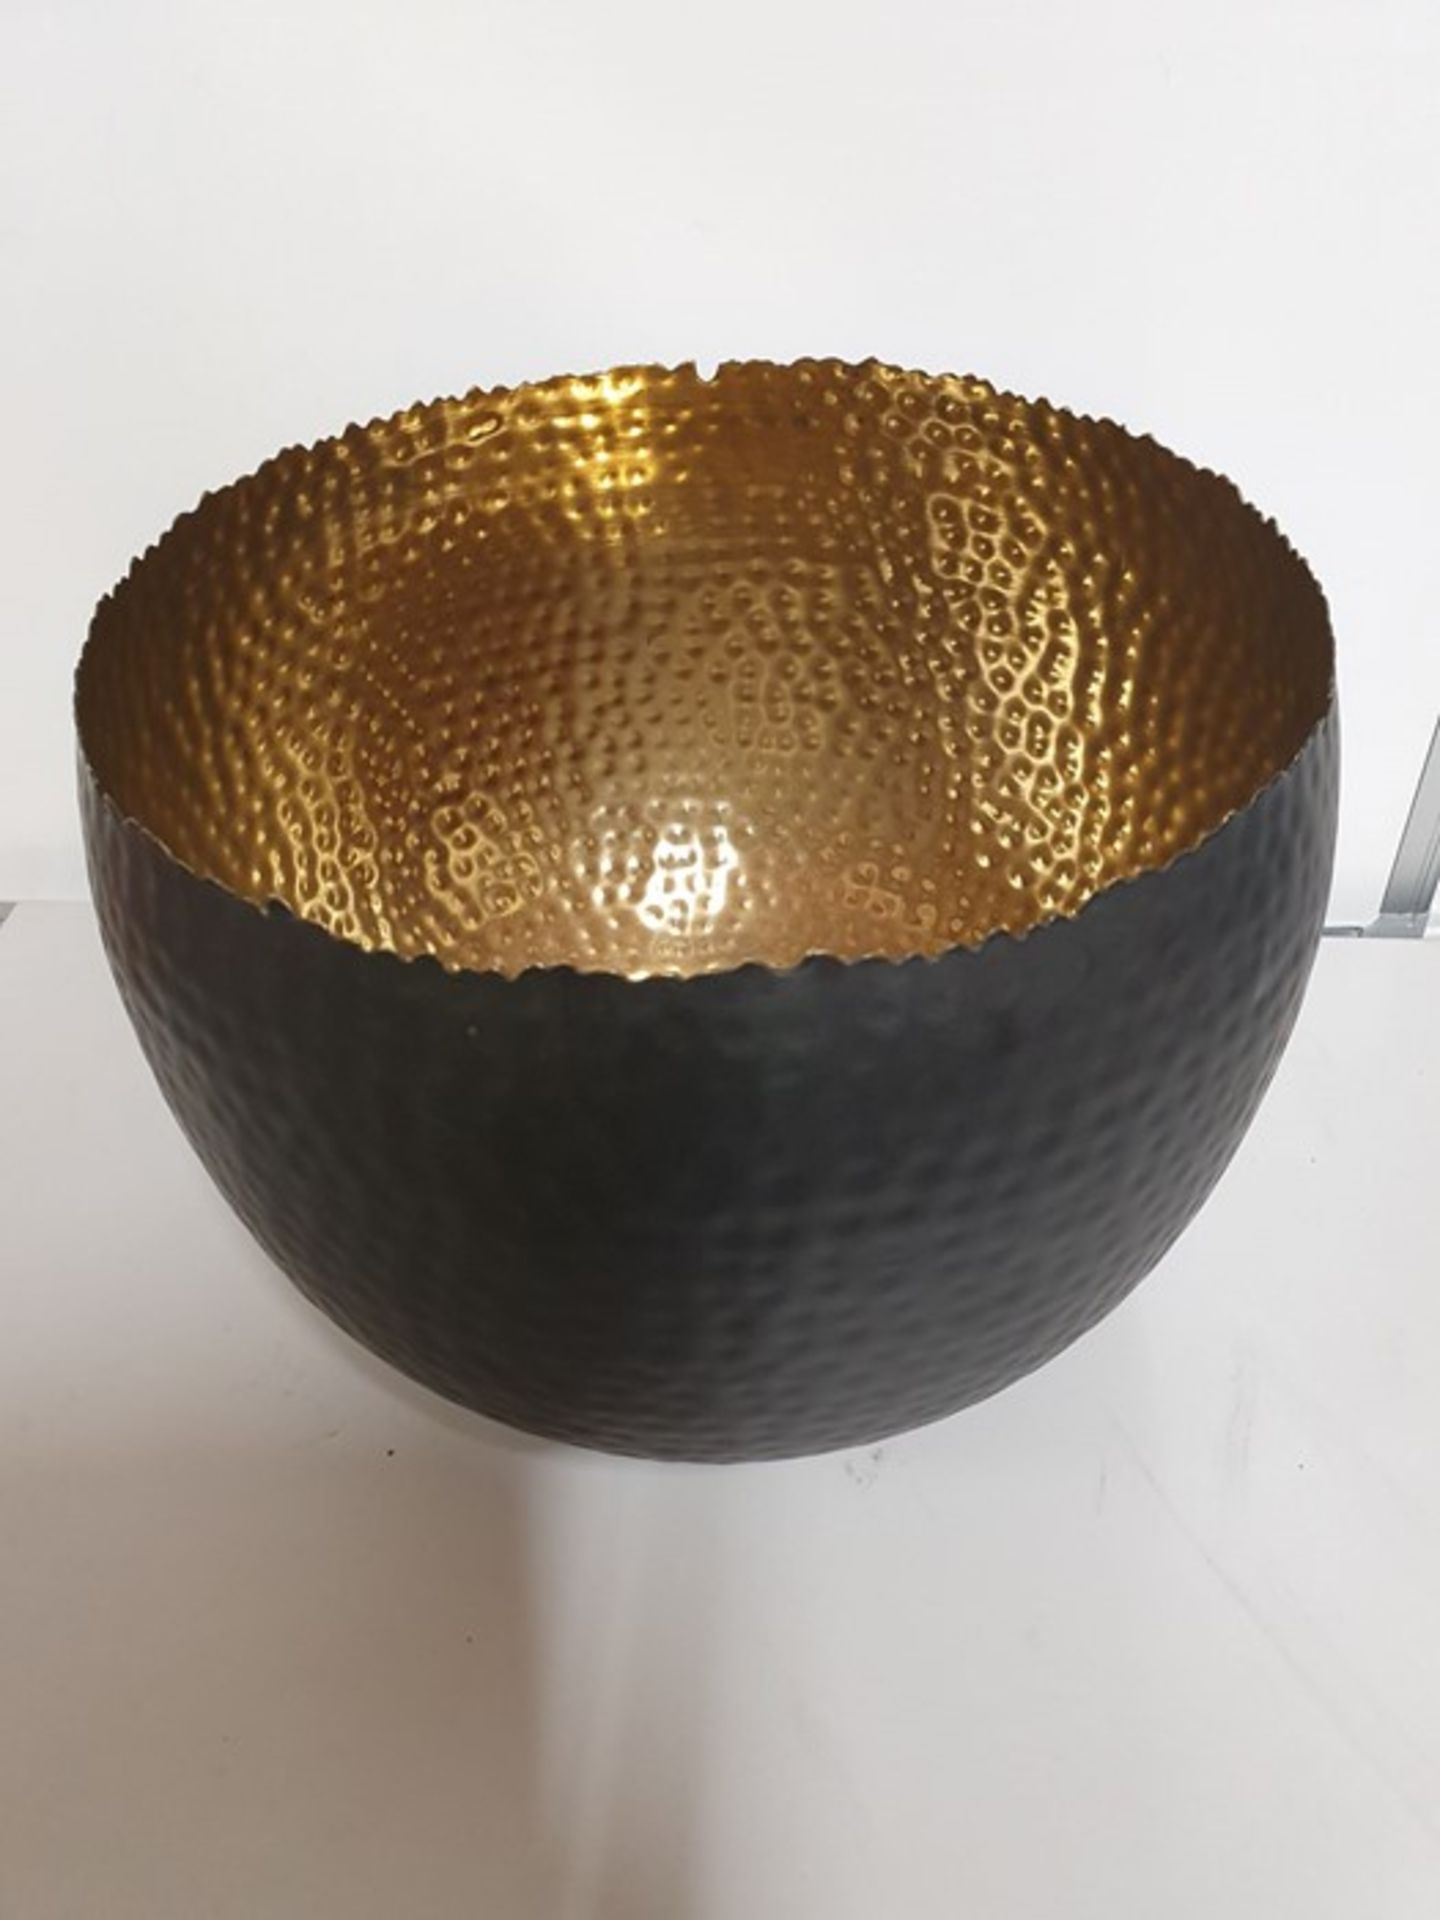 ONE LOT TO CONTAIN ONE HAMMERED BLACK AND GOLD BOWL. 30CM DIAMETER. A FEW LIGHT STRACHES - HARDLY